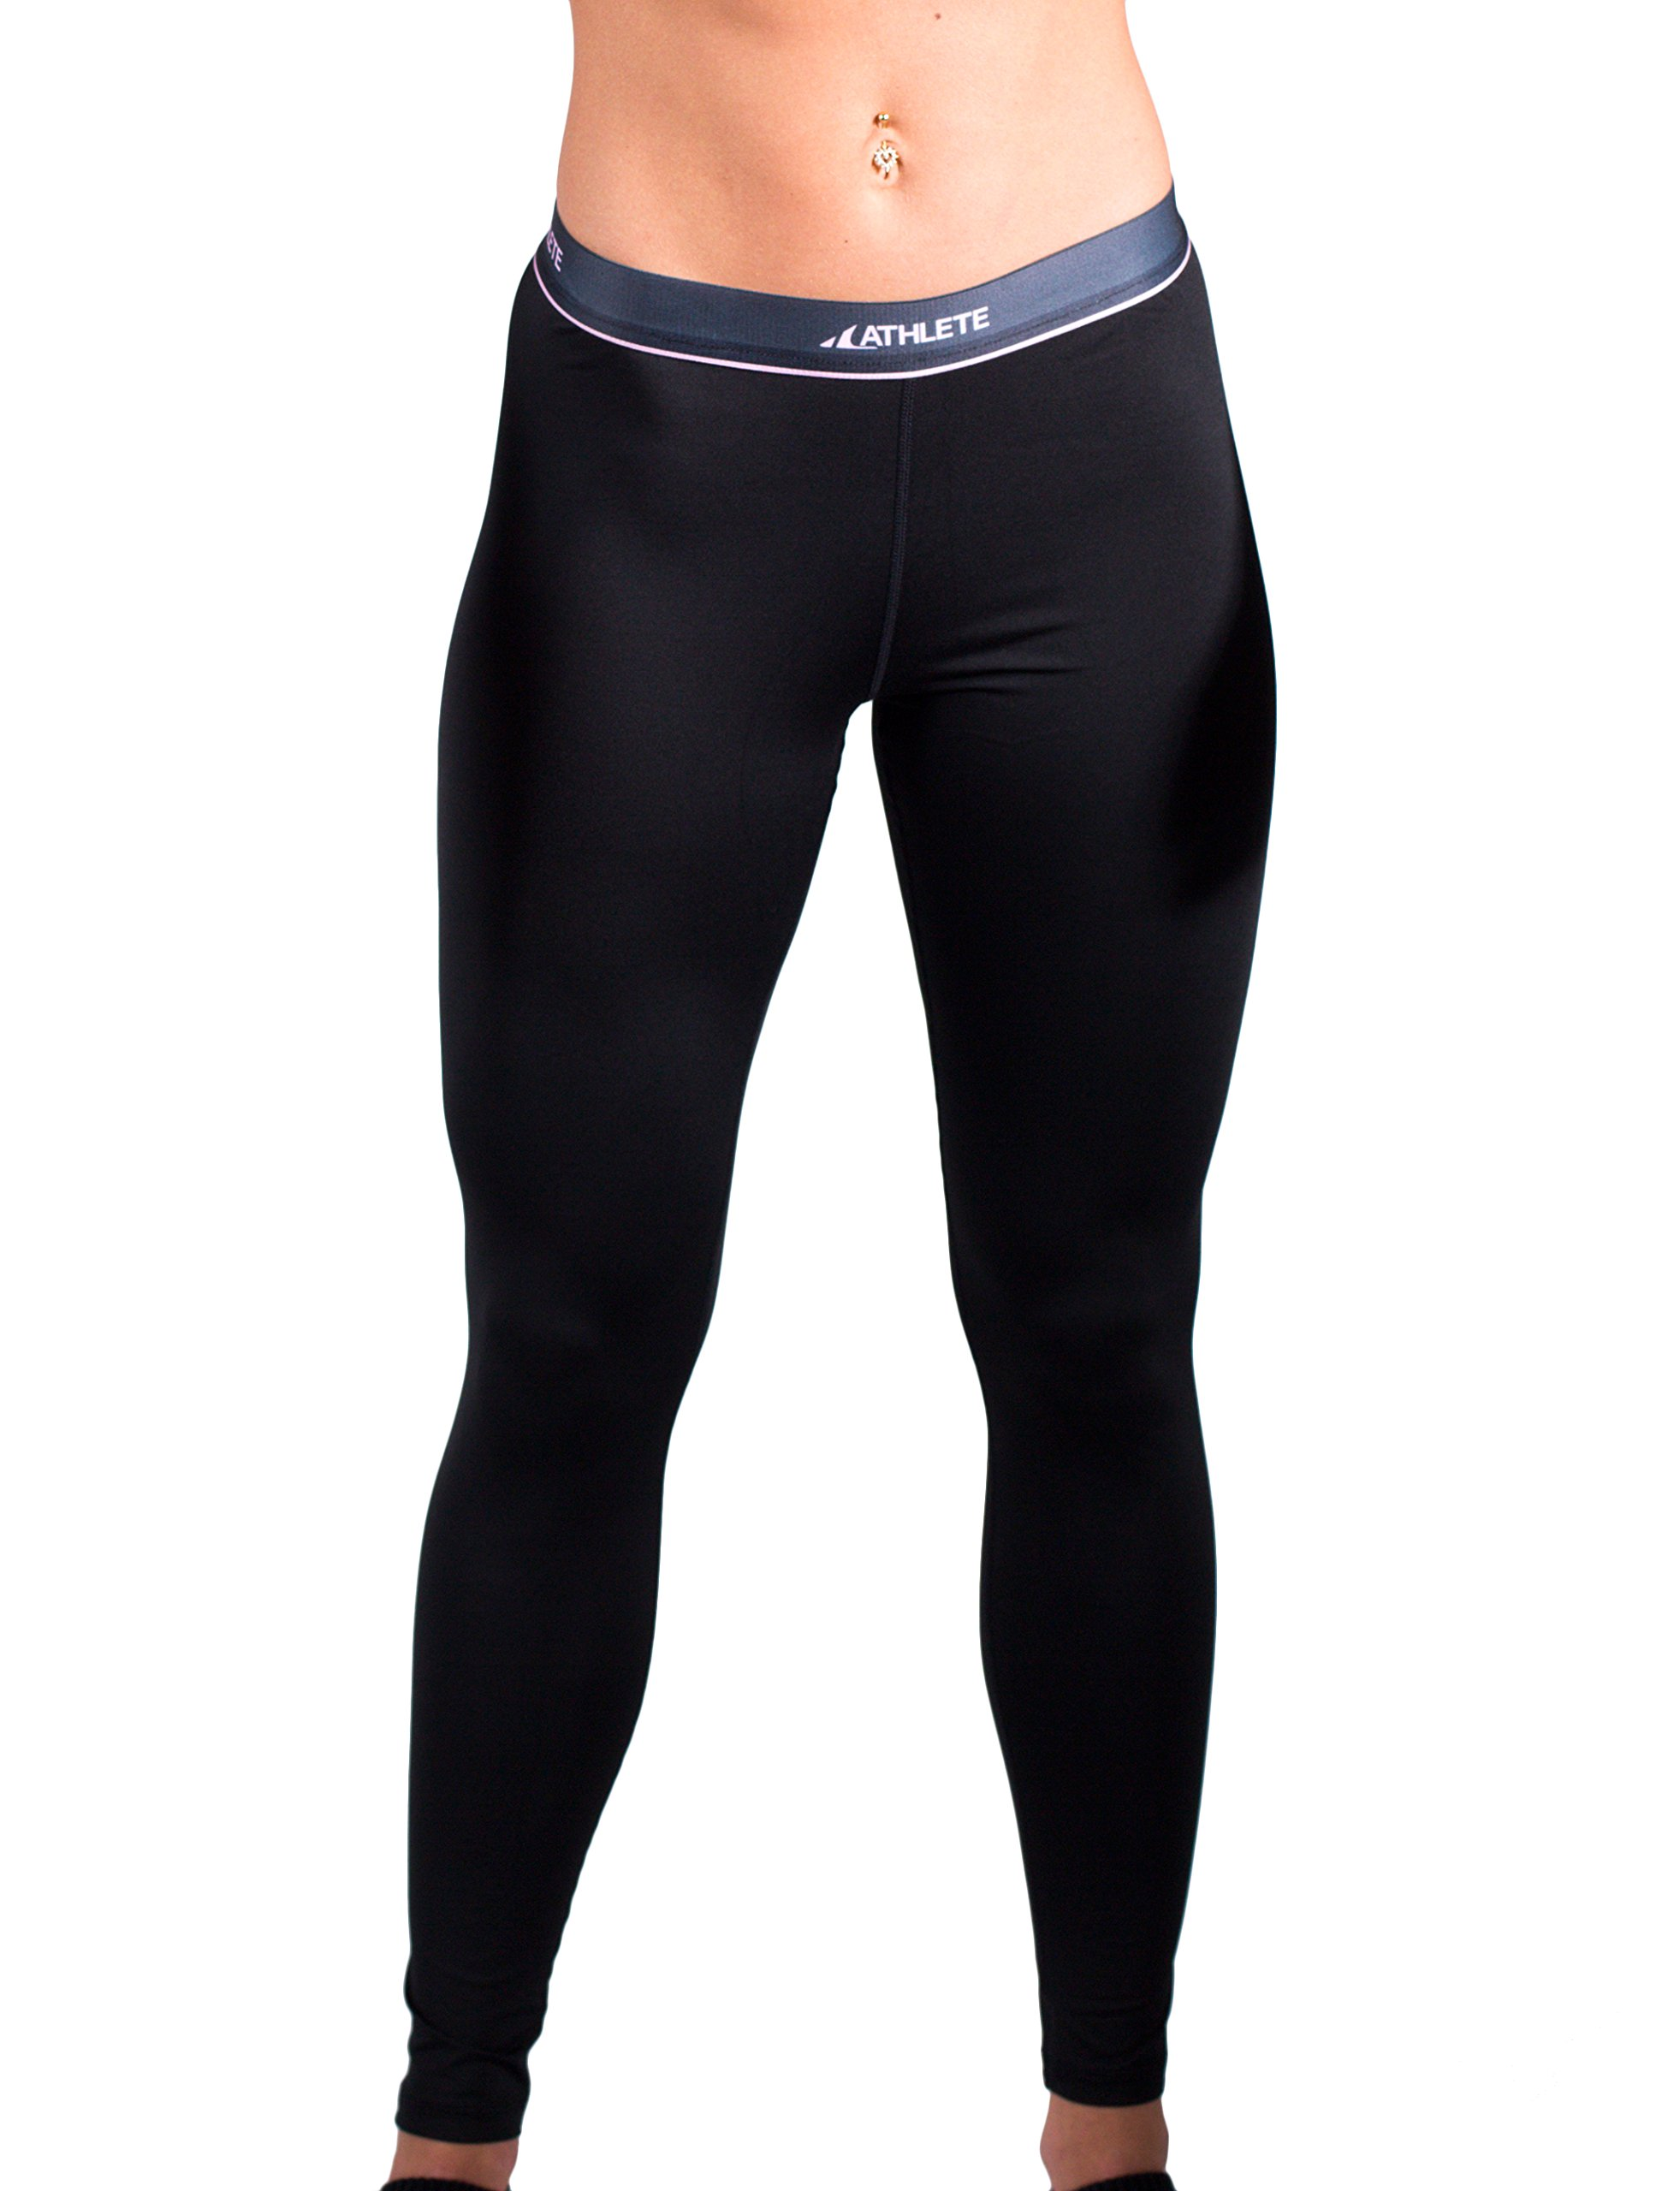 COOVY ATHLETE Women's Tights / Leggings, Style W08